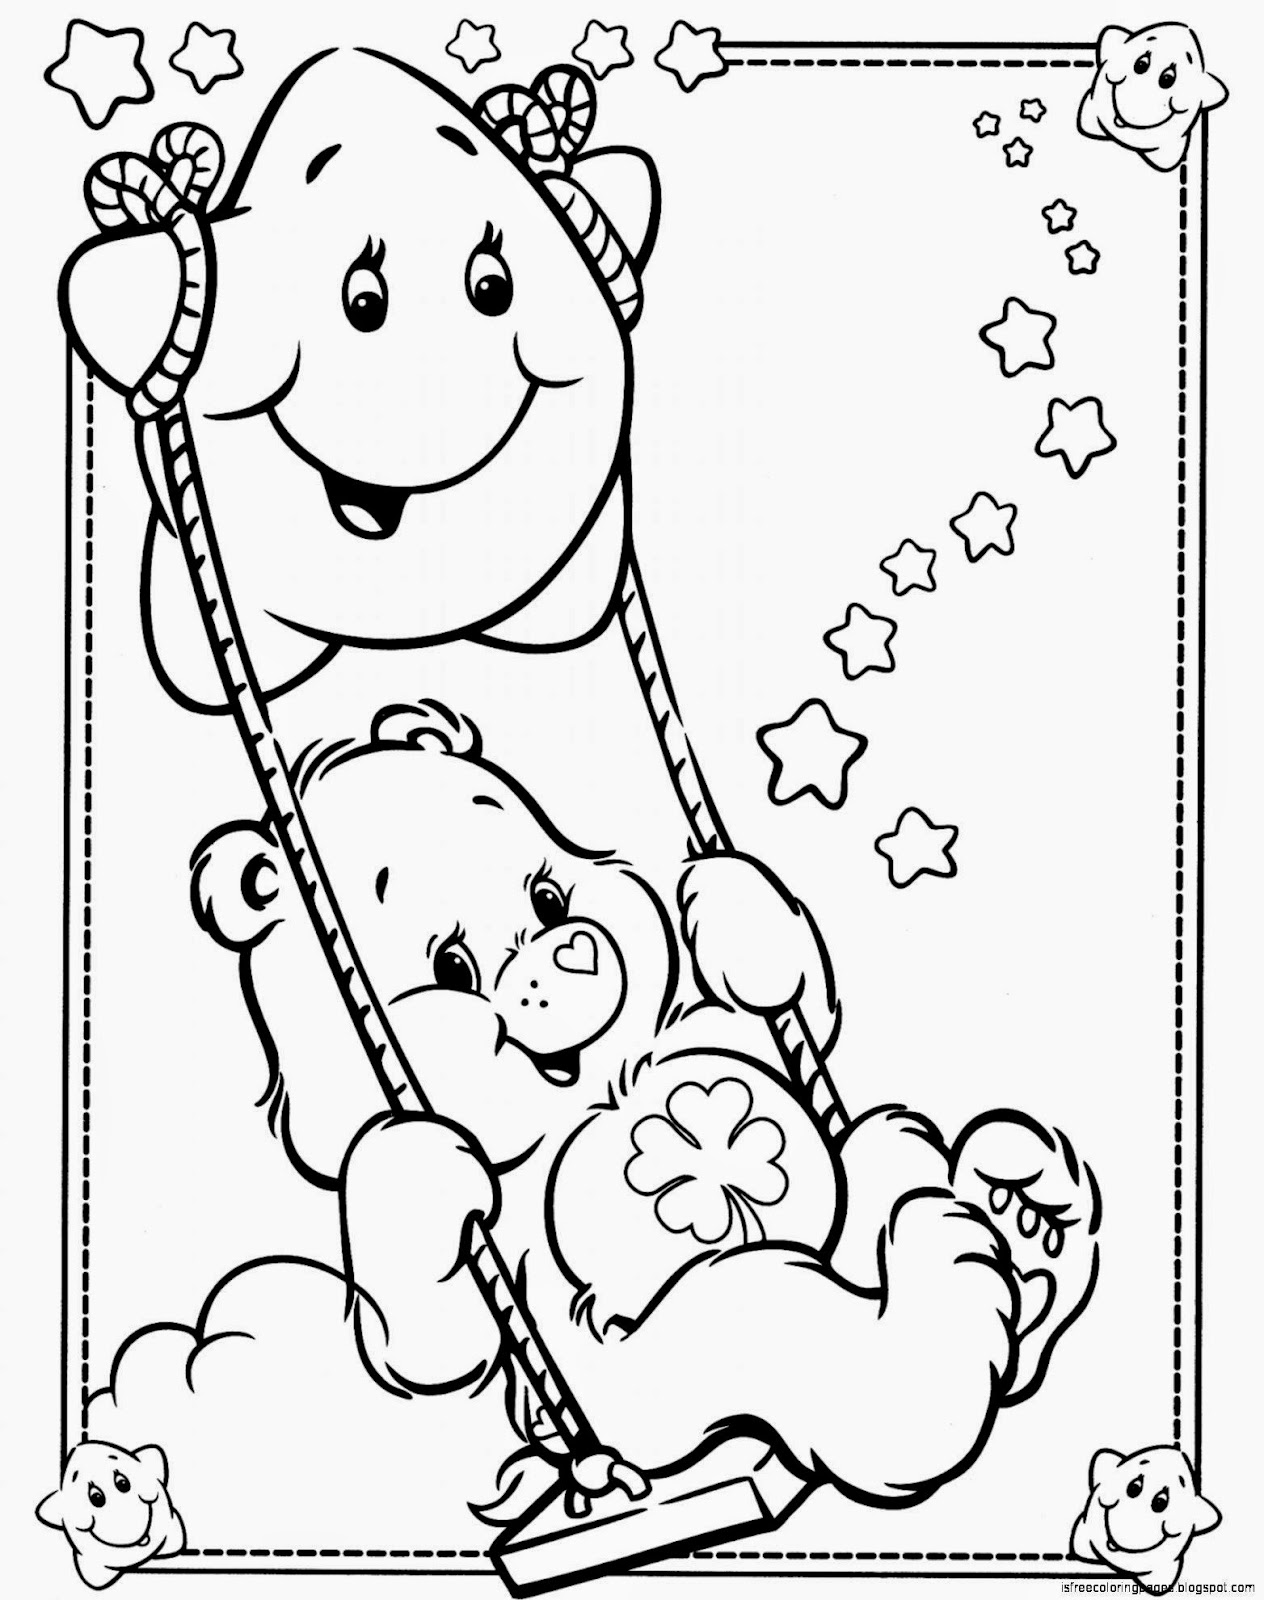 care bear coloring page - care bears coloring pages free coloring pages